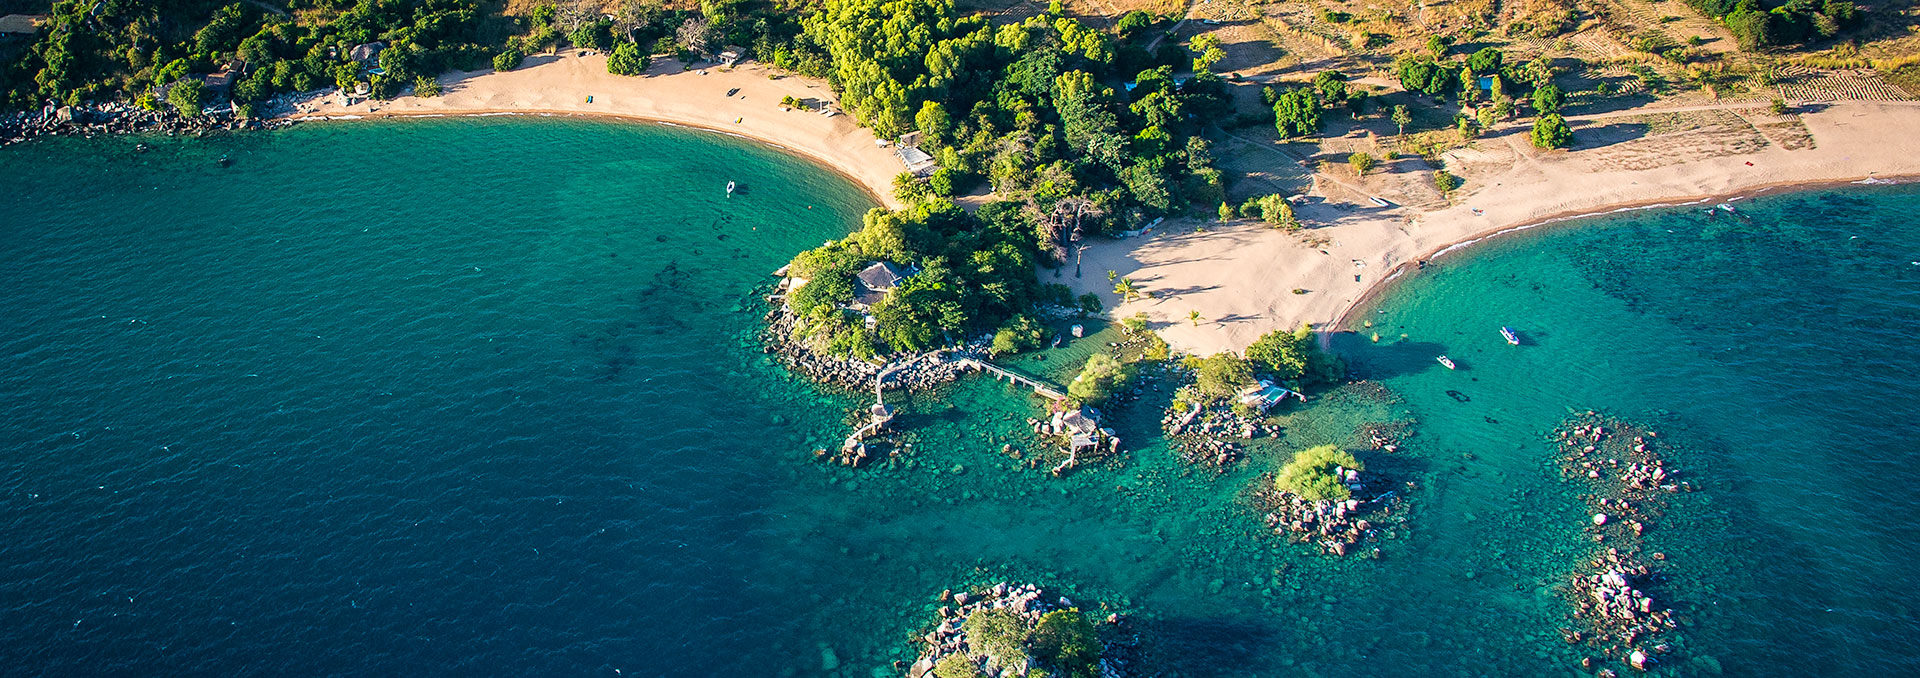 Image result for Lake Malawi, Malawi